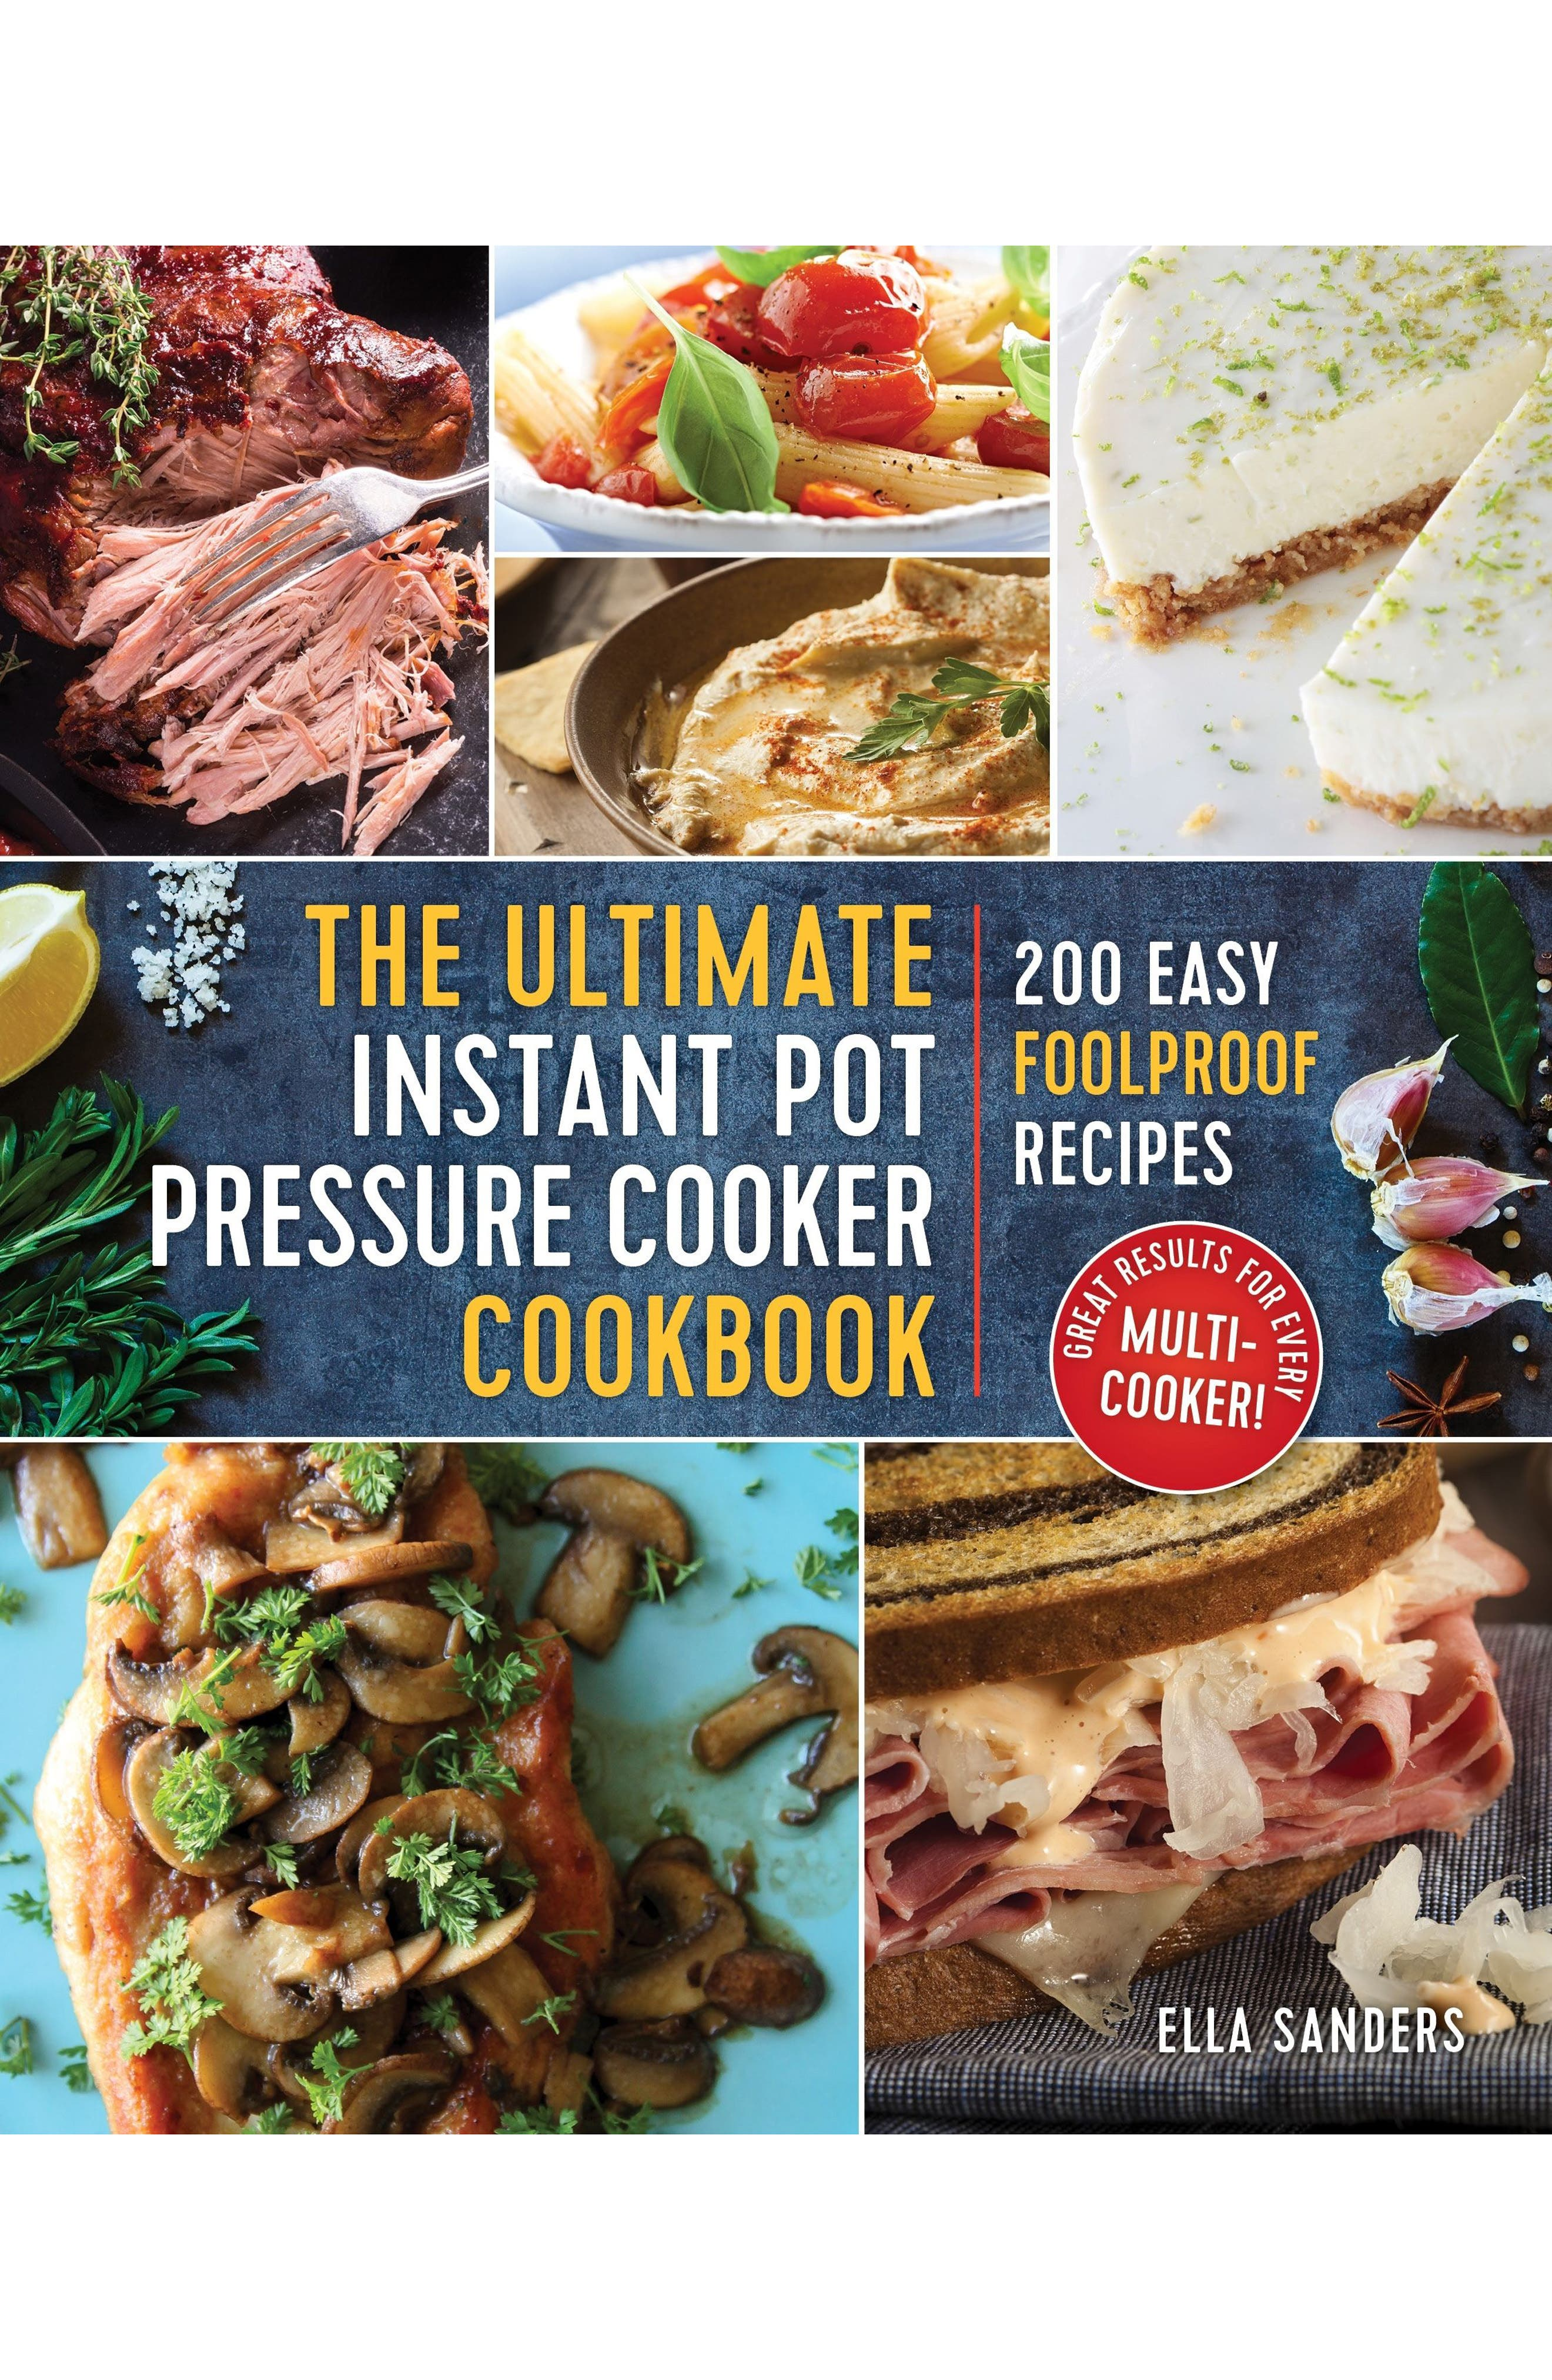 The Ultimate Instant Pot Pressure Cooker Cookbook,                             Main thumbnail 1, color,                             Blue